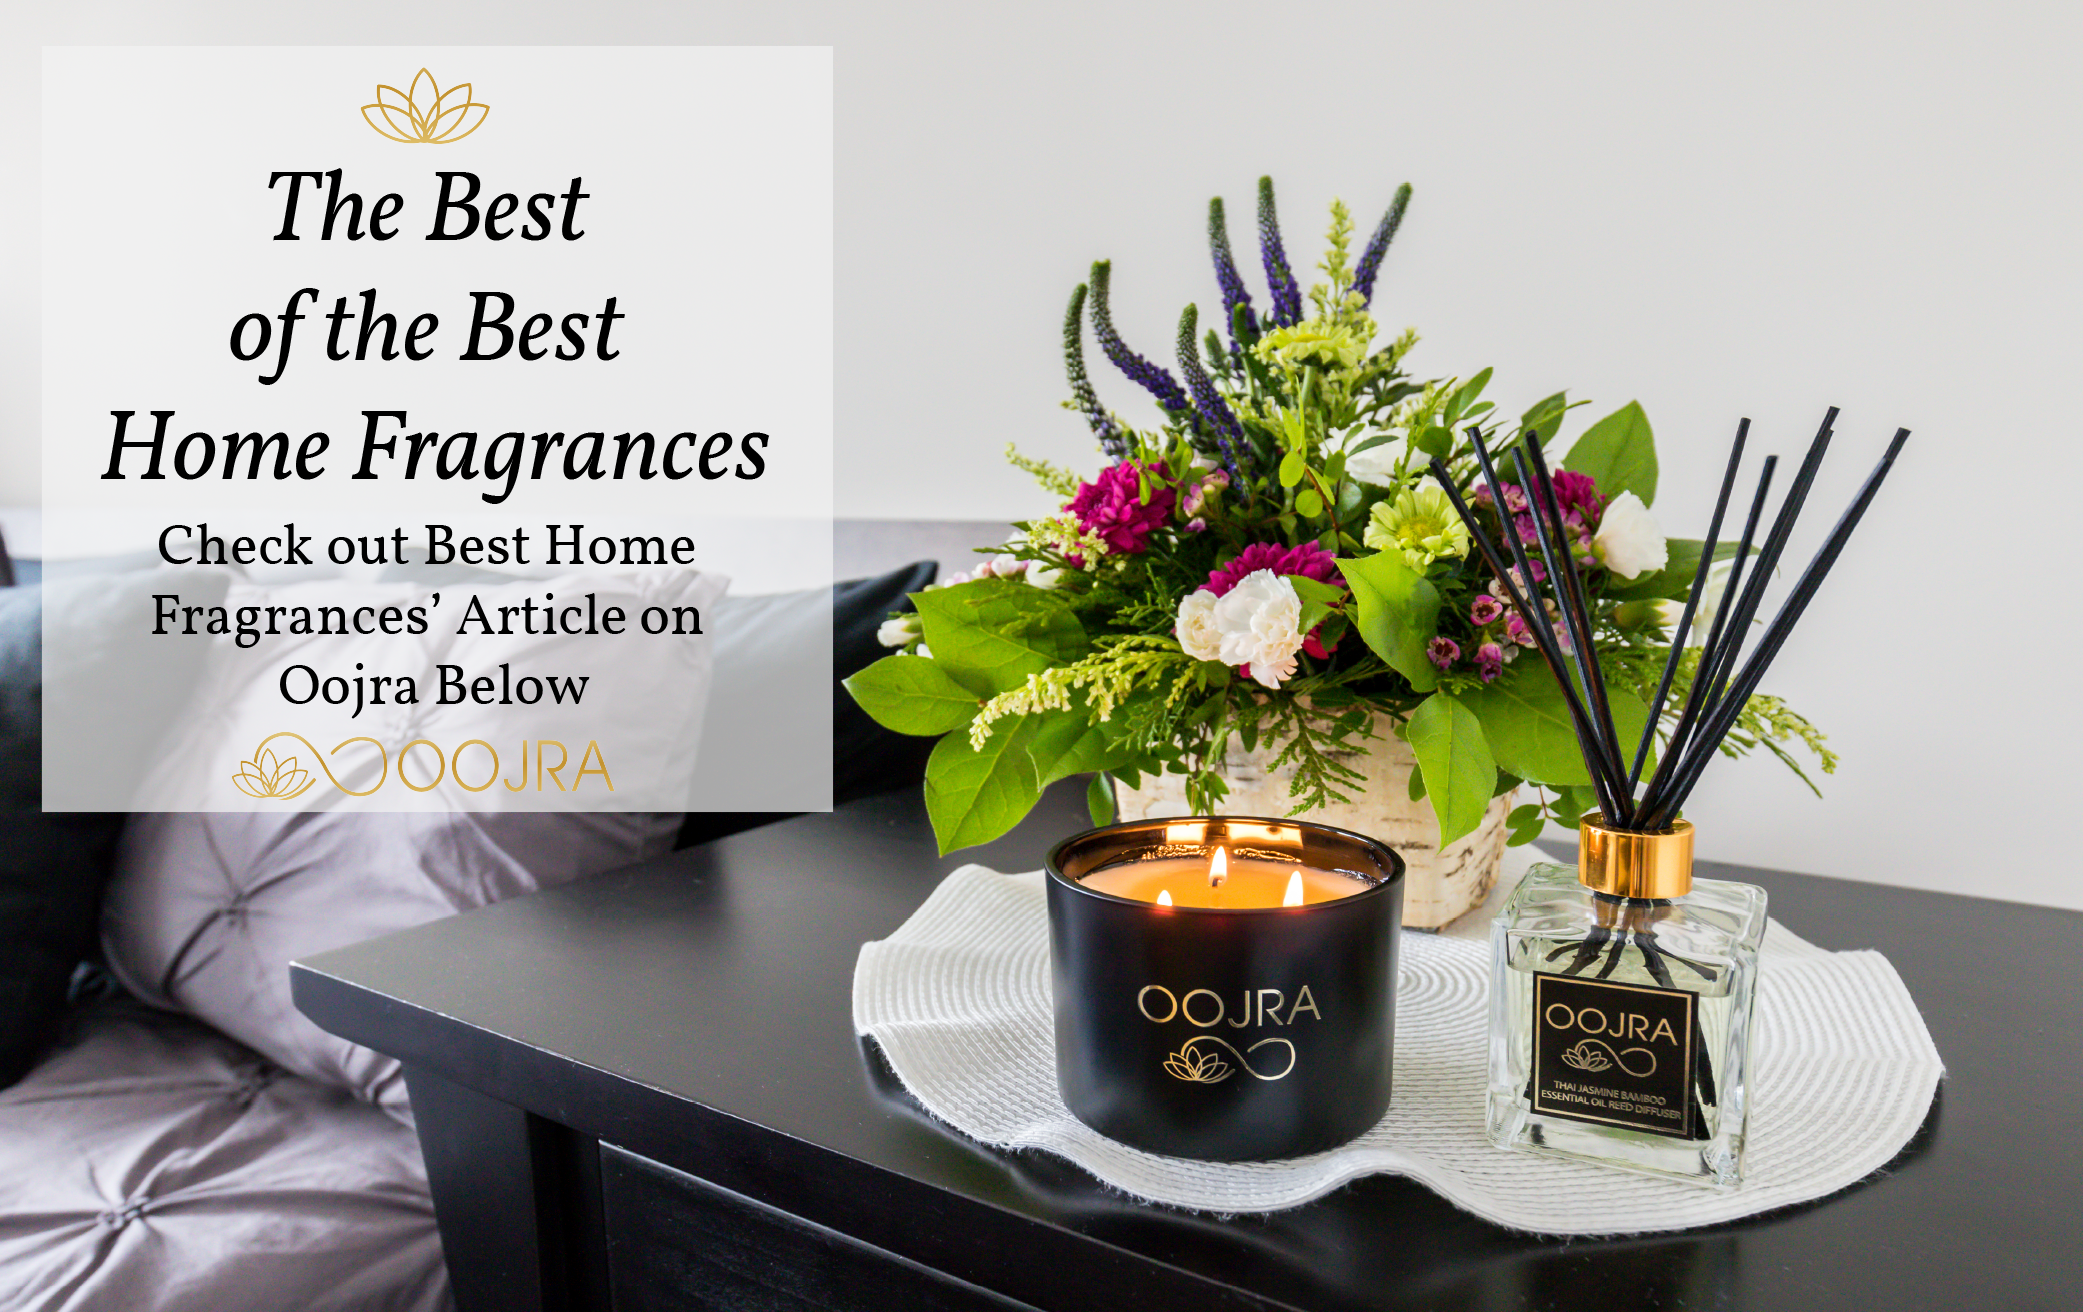 Best Home Fragrance Has Chosen Oojra As The Best Oil Reed Diffuser